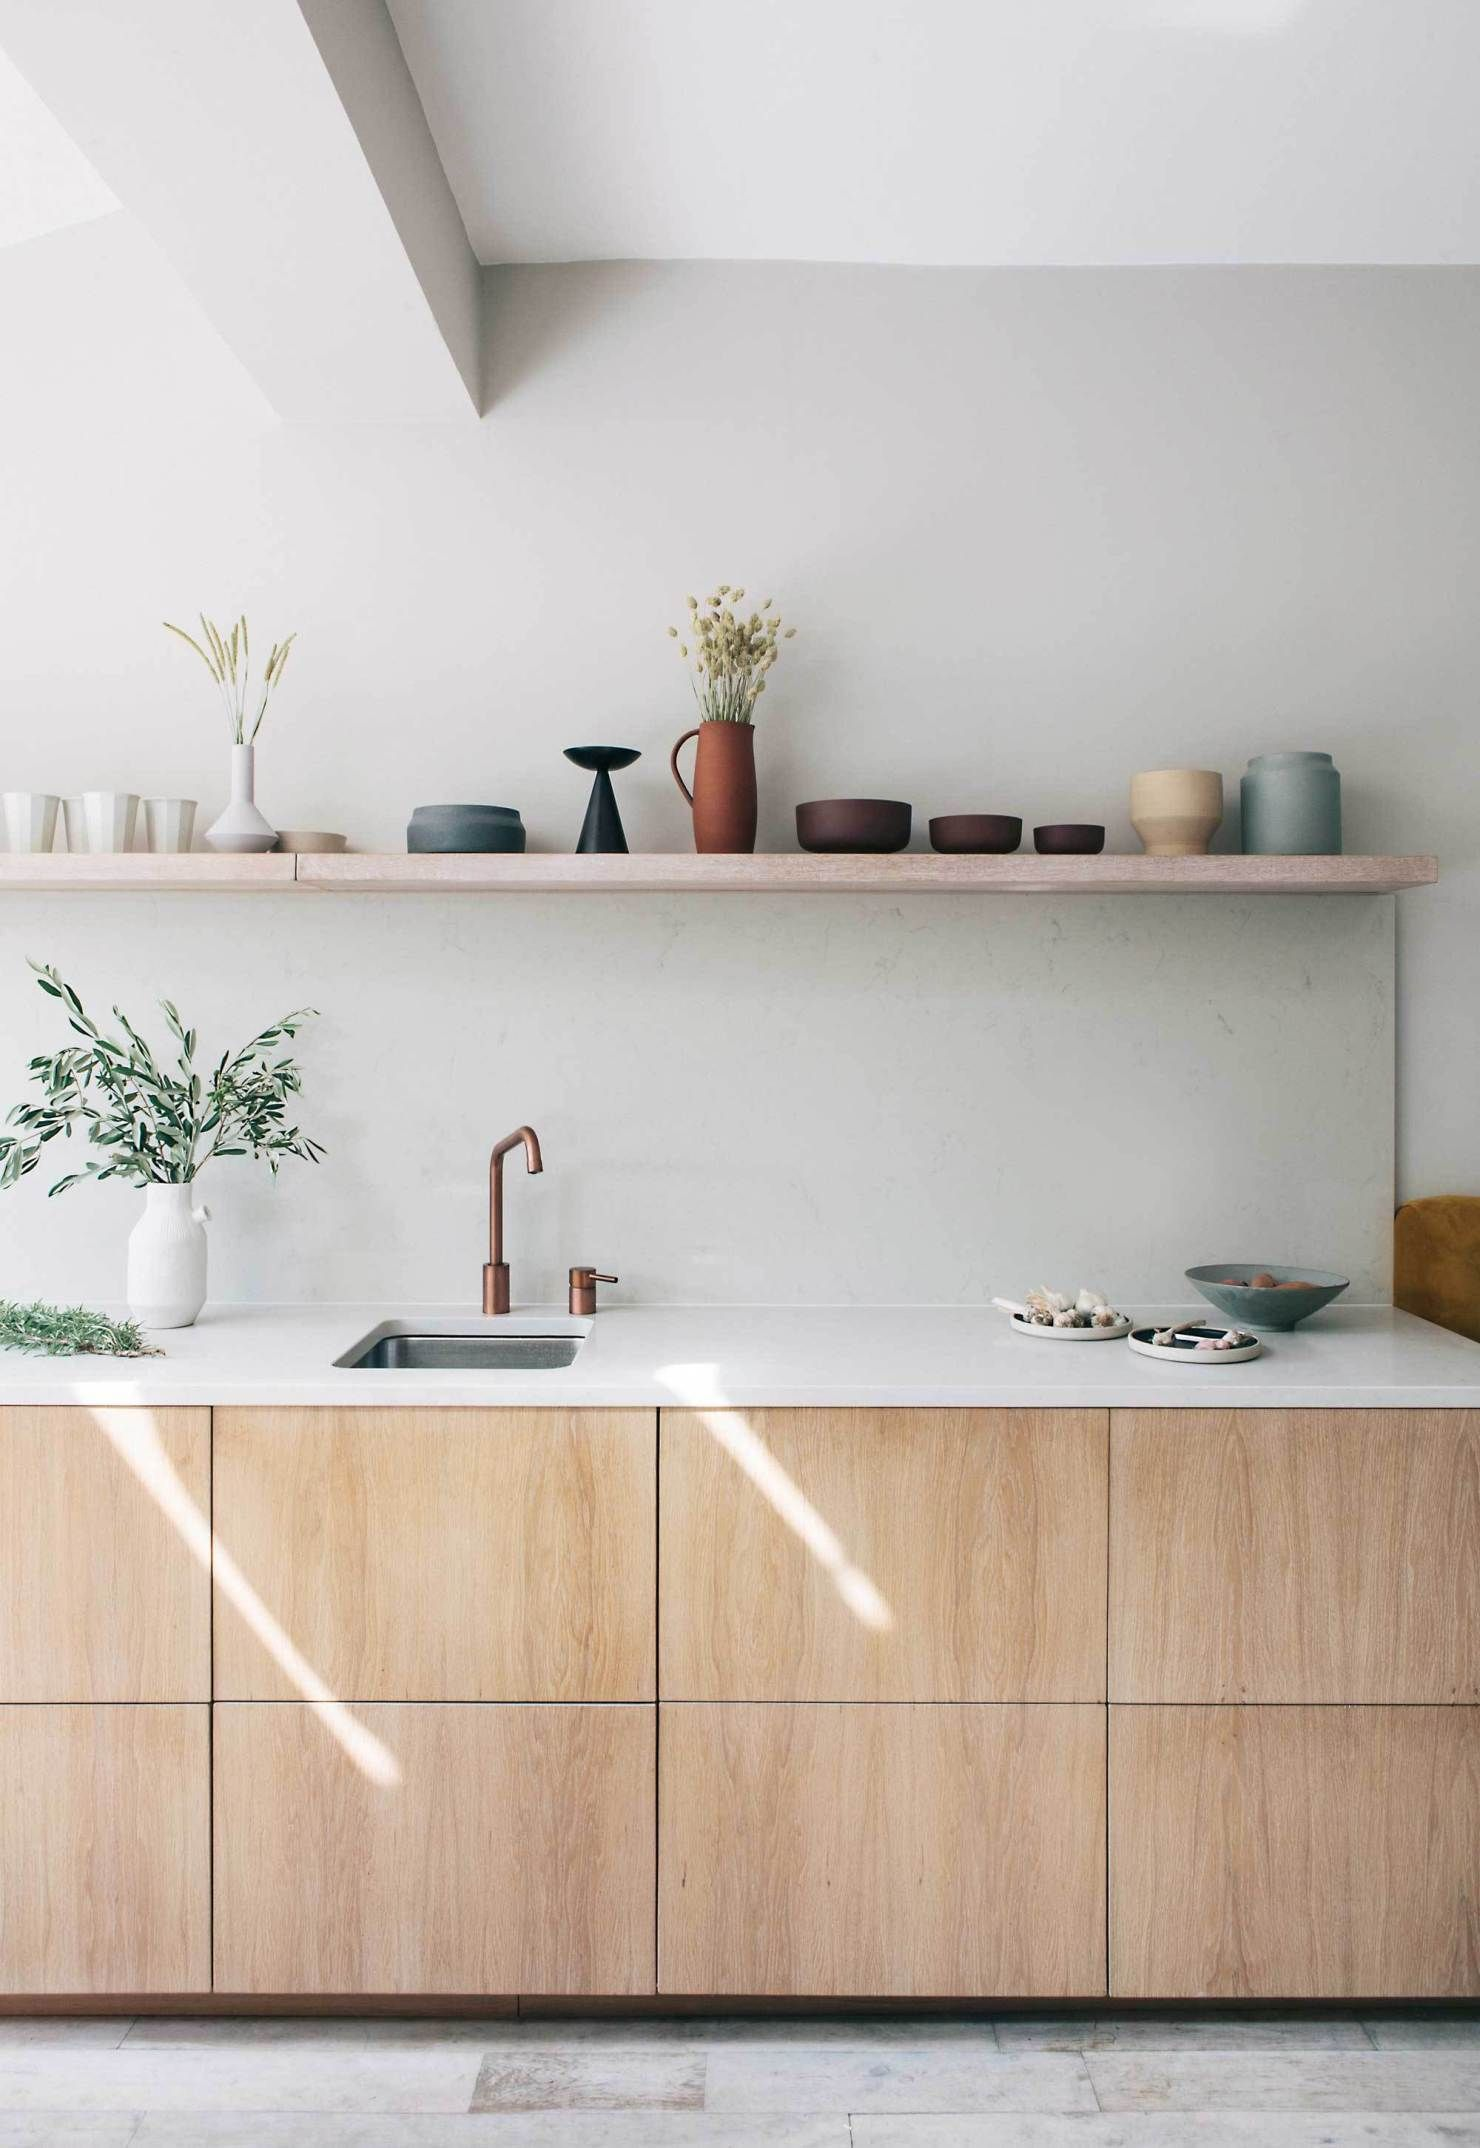 Six Brands To Help You Customise Ikea Kitchen Cabinets These Four Walls Ikea Kitchen Design Plywood Kitchen Interior Design Kitchen